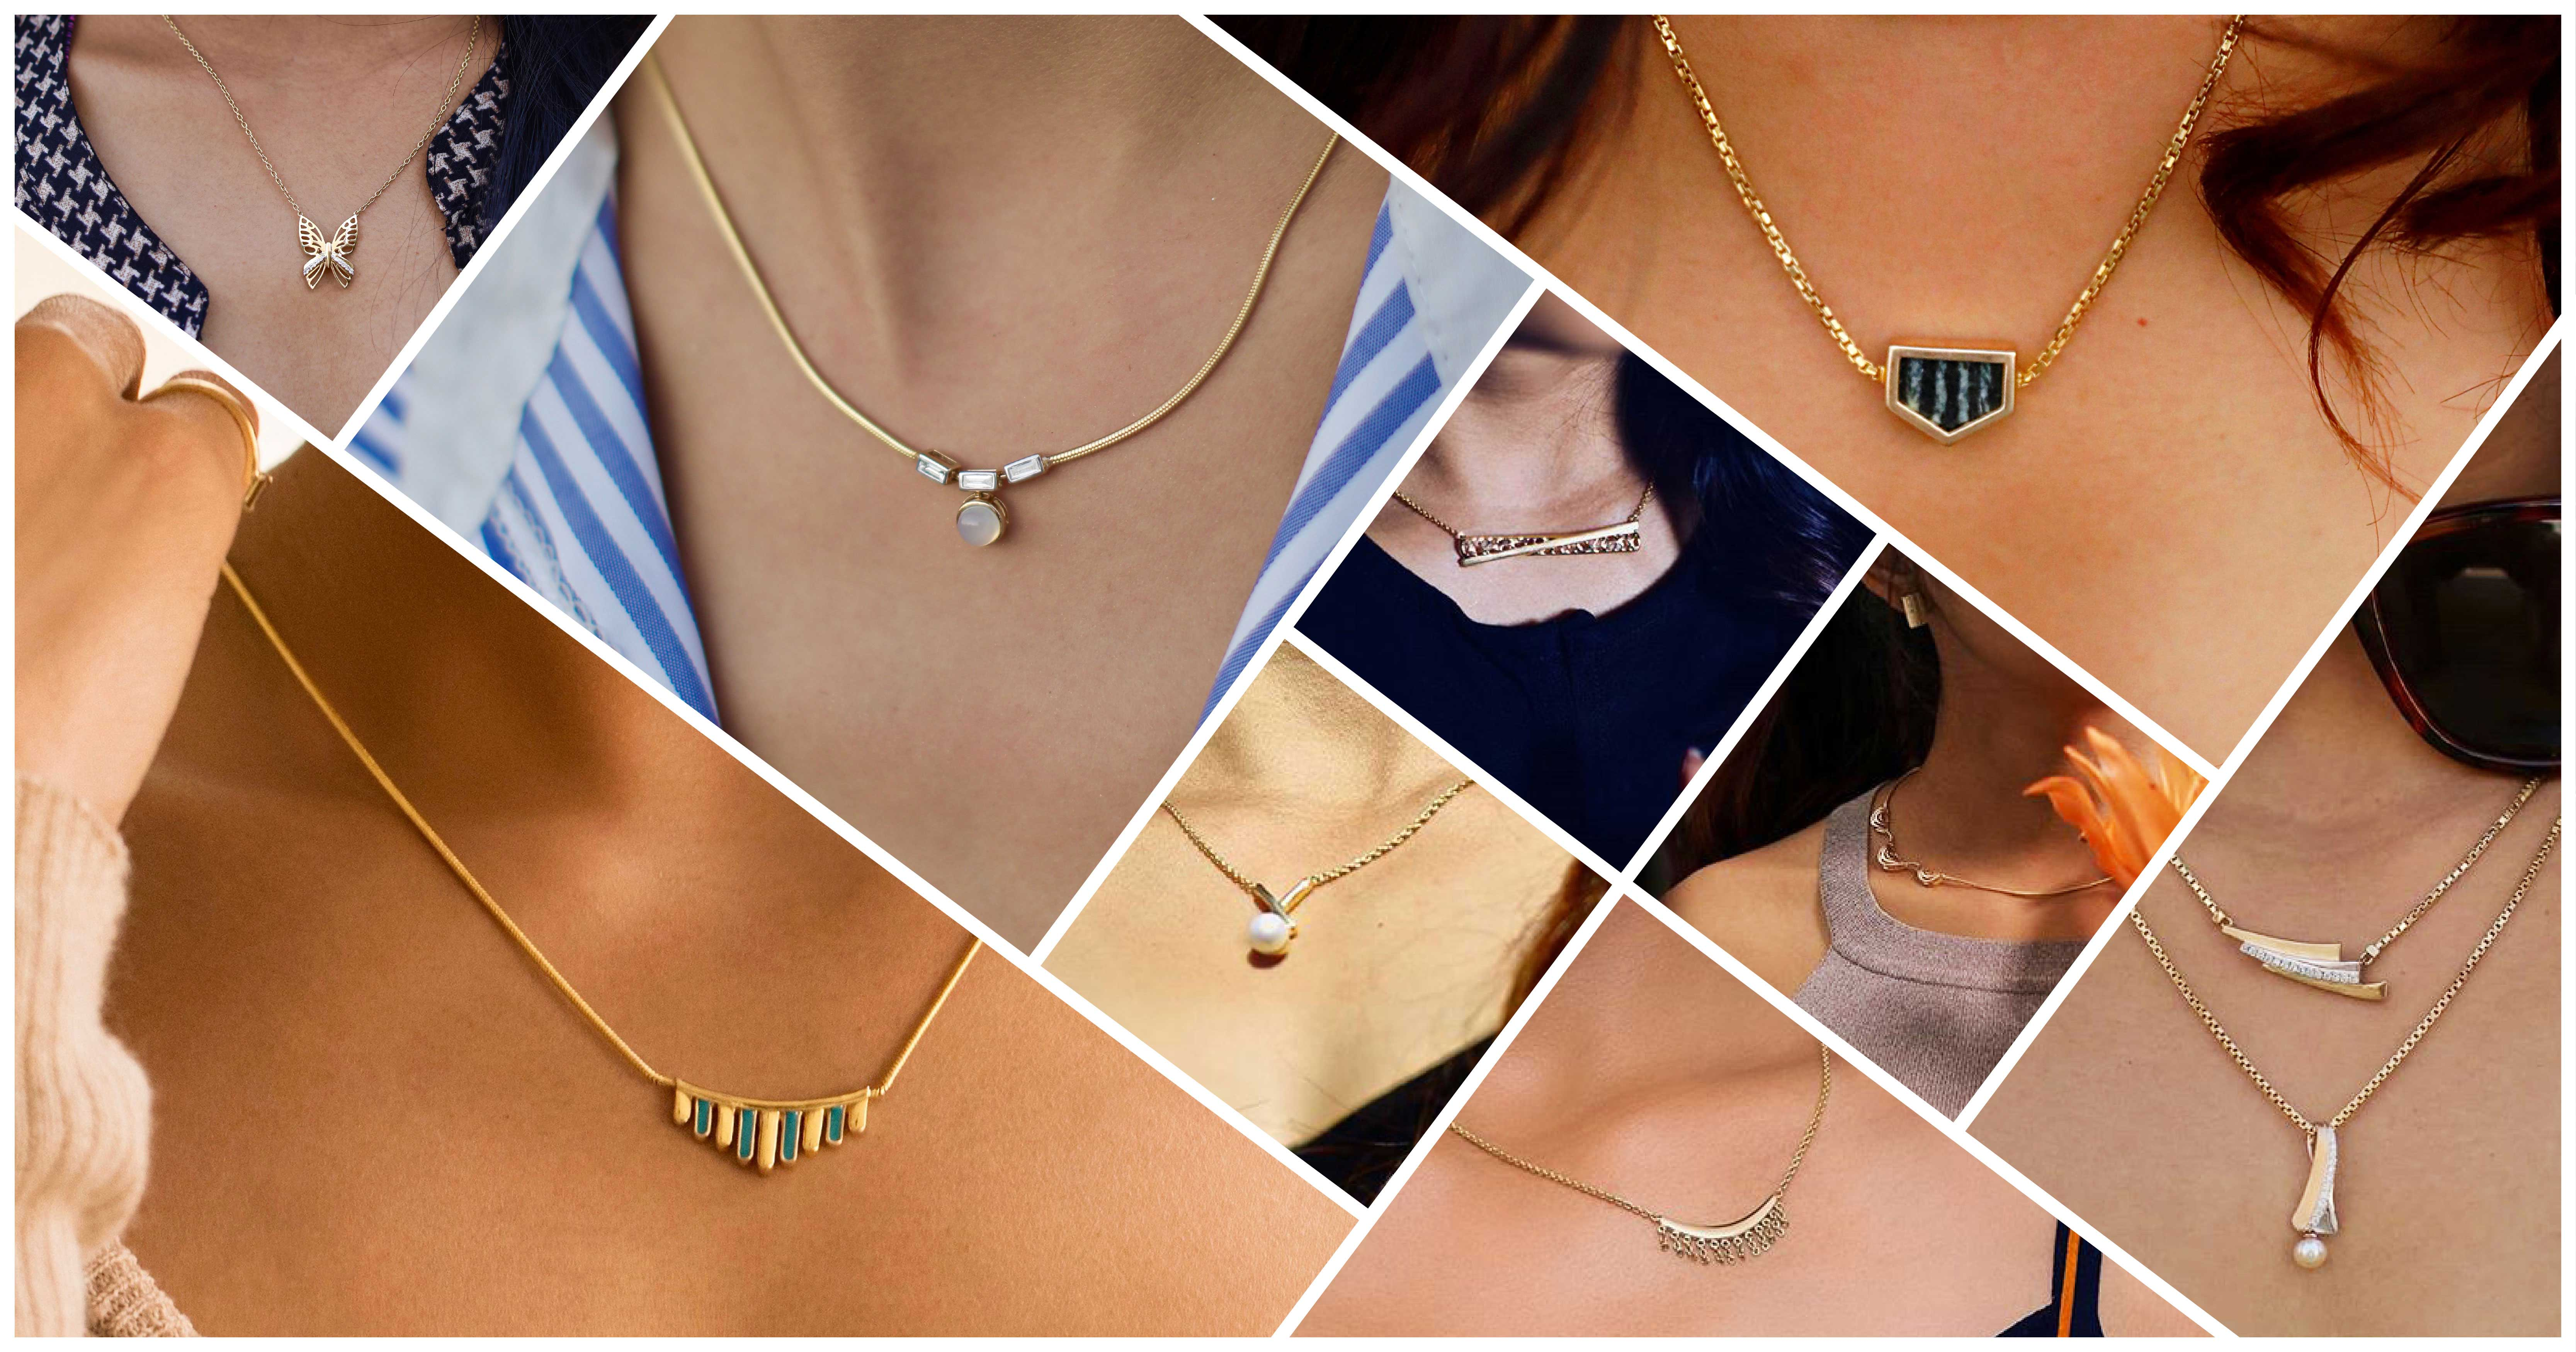 The Modern Dawn of Necklets - Necklaces, But Better!